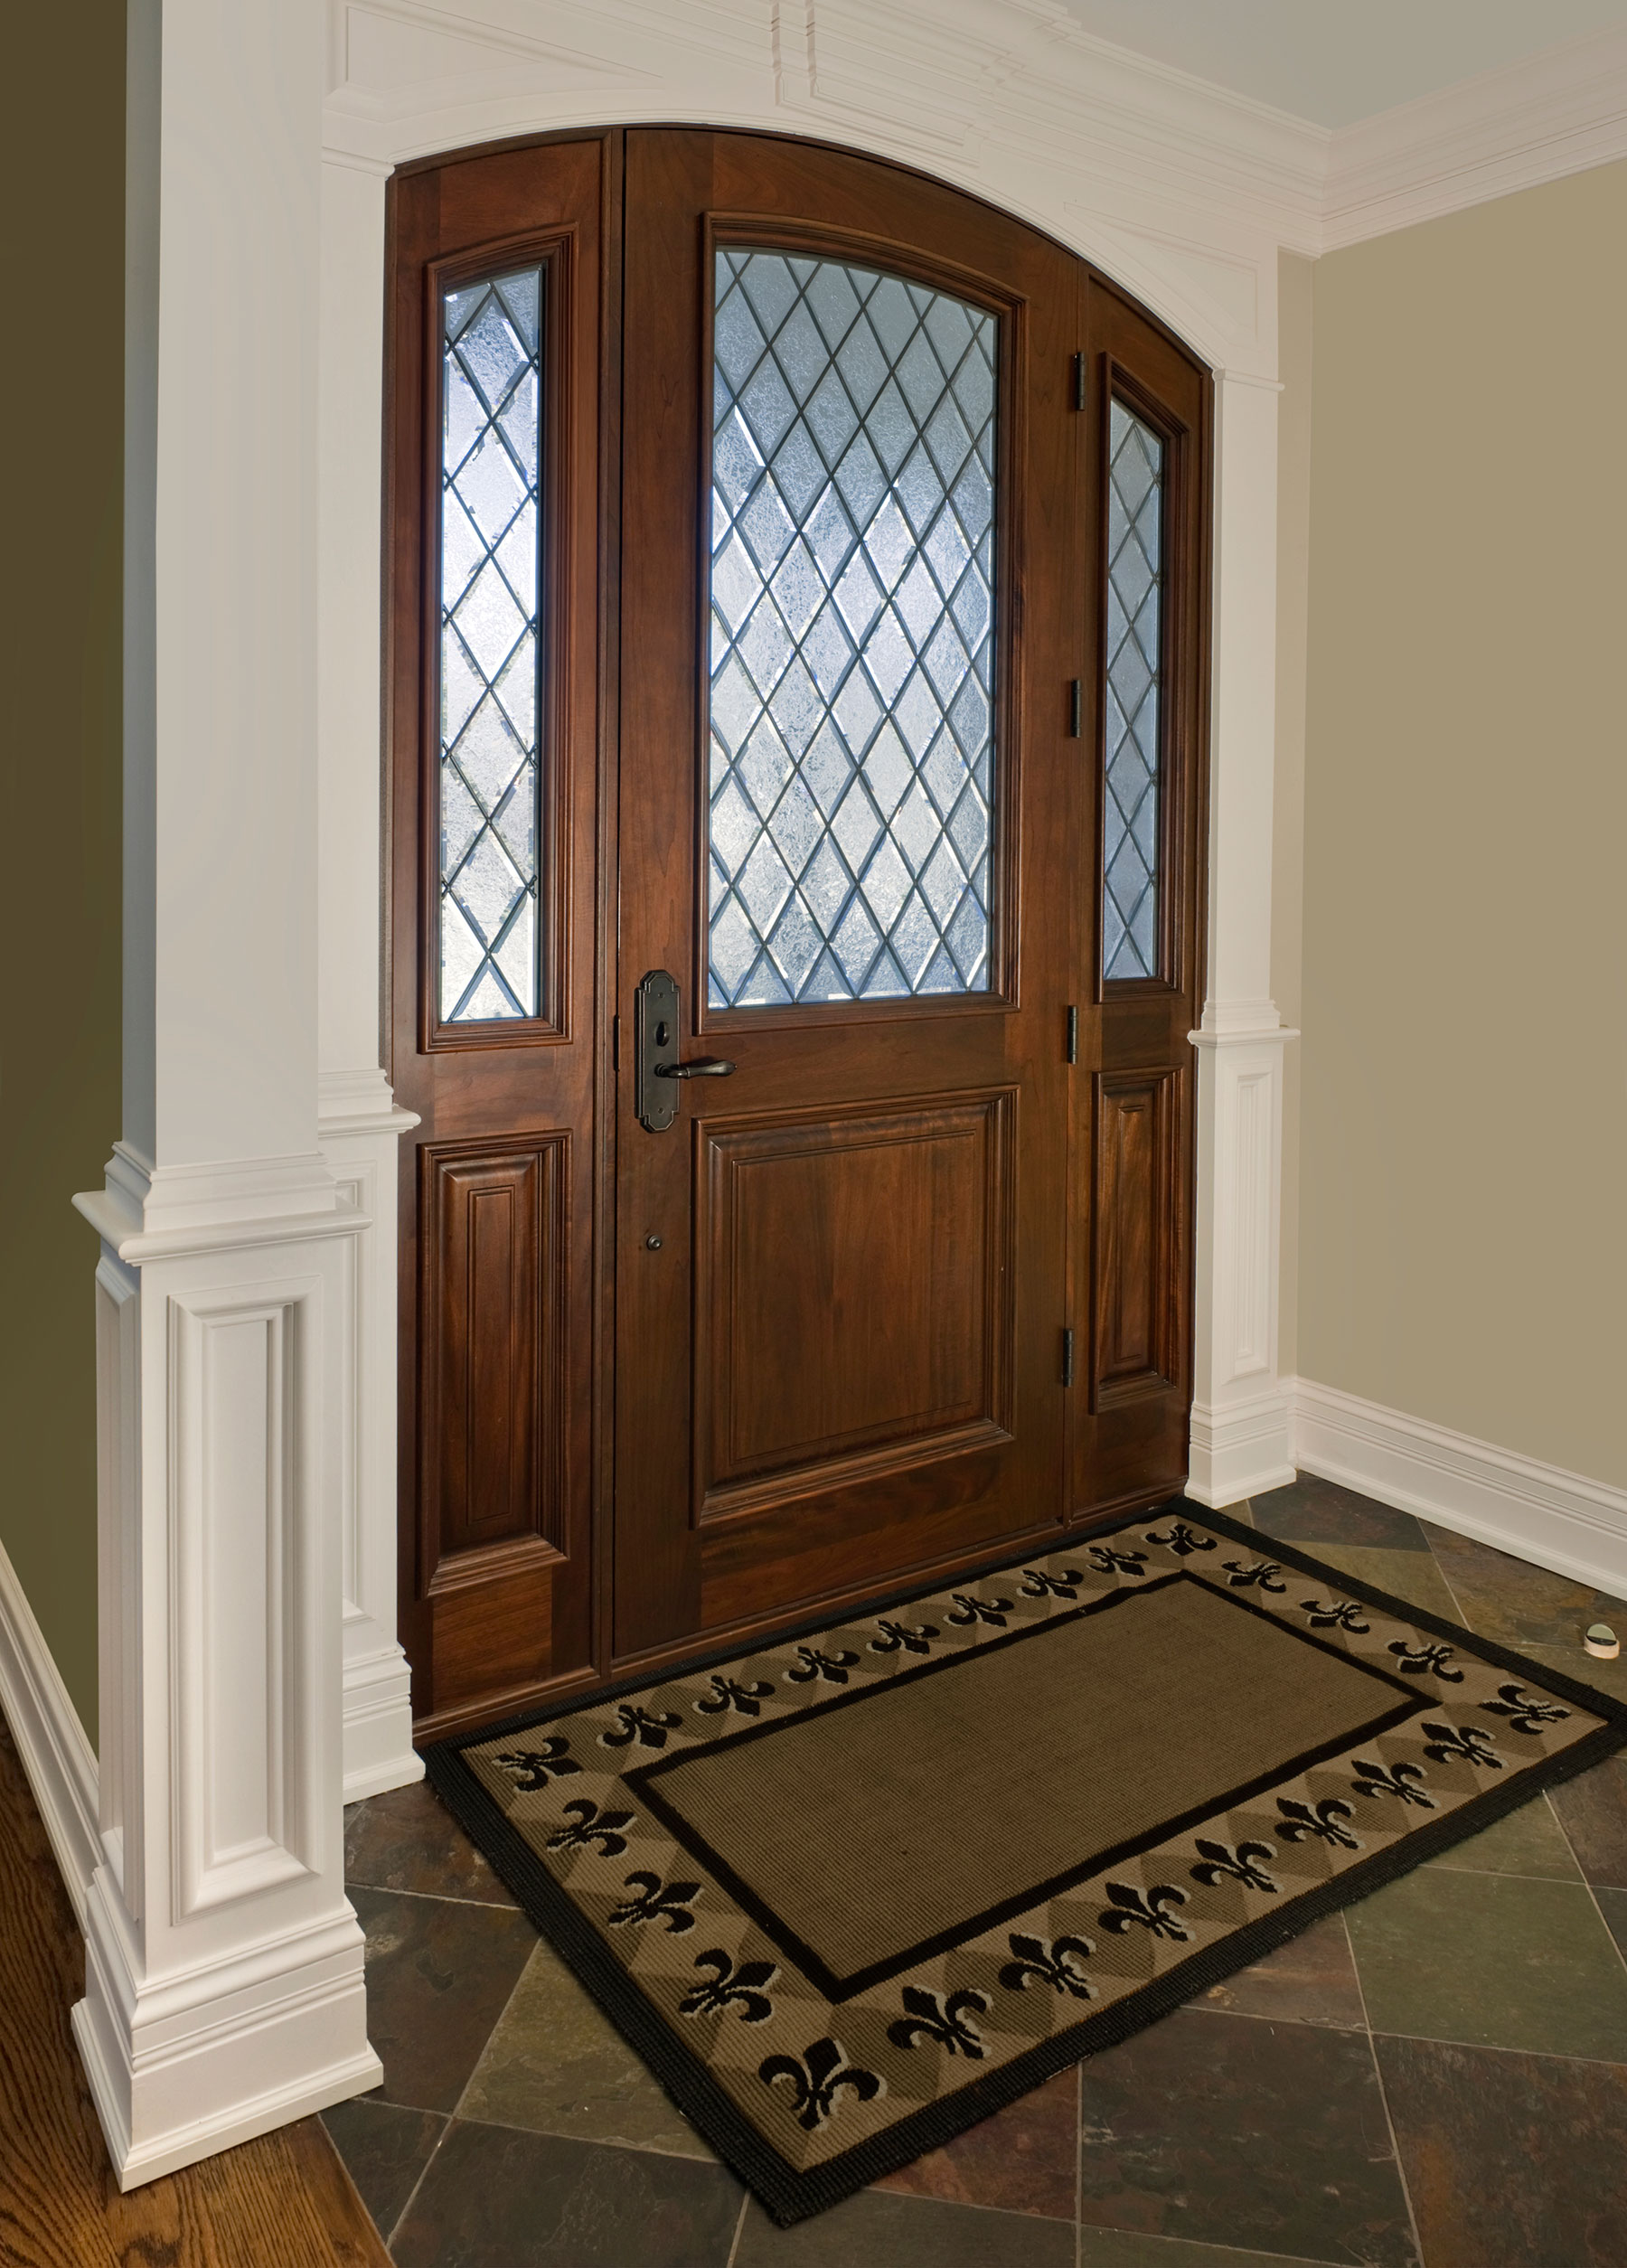 Wood Front Entry Doors in-Stock | Solid Wood Entry Door - Diamond Privacy Glass DB-552WDG 2SL - Glenview Doors - Custom Doors in Chicago